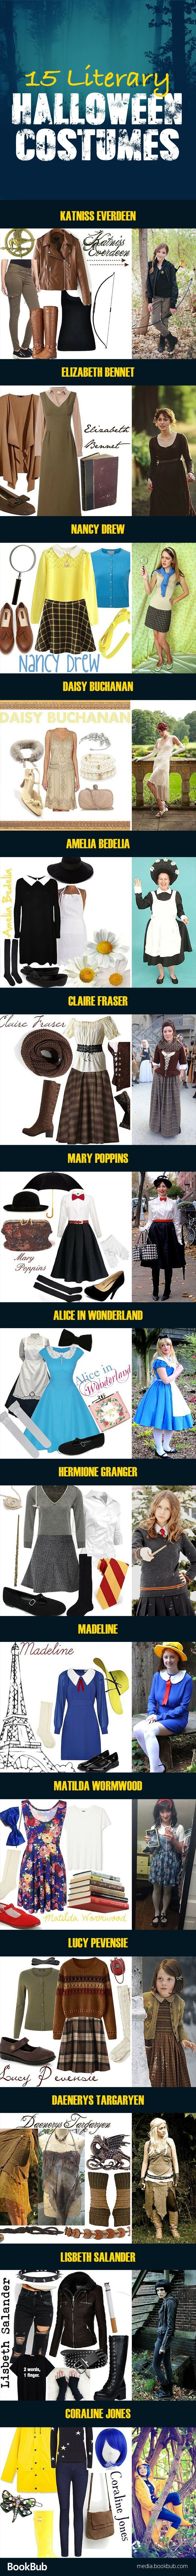 15 Halloween costume ideas for adults and for teens. These bookish Halloween costumes are great for bookworms looking for creative ideas!